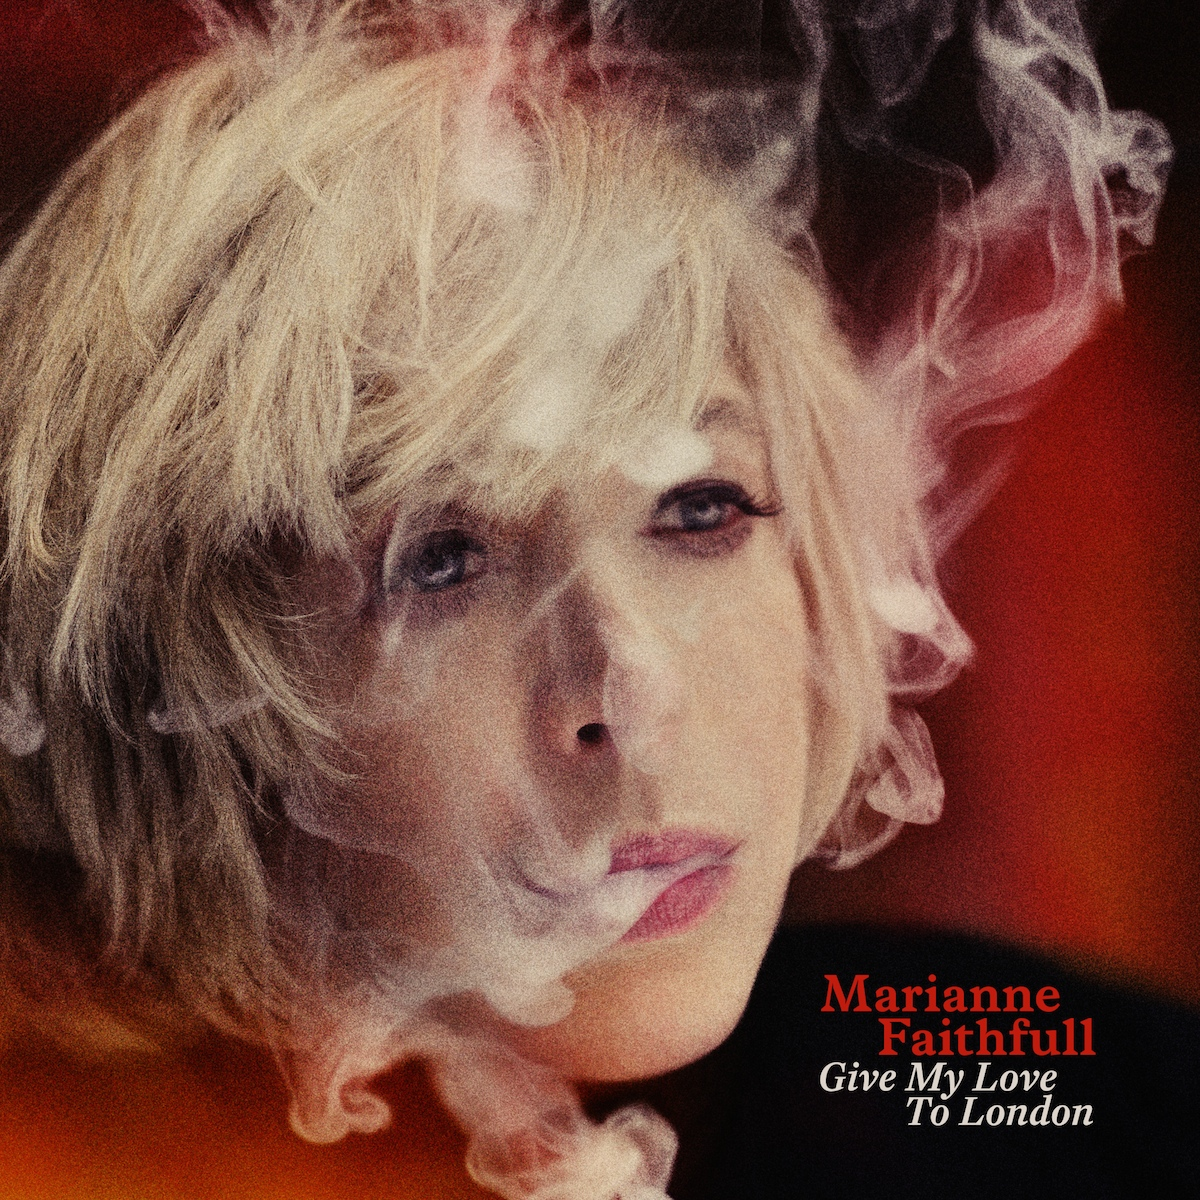 "Give My Love To London fetches an 8.0 + incredible review over at Pitchfork   Just one more month to wait for the US/Canada street date, until then, study up:    Pitchfork.com | 8.0 | Marianne Faithfull, Give My Love To London     ""Working with Roger Waters, Nick Cave, Anna Calvi, and a band that features Ed Harcourt, Portishead's Adrian Utley, and members of the Bad Seeds, she has created an album that bristles with danger and even roils with anger""   ""Her best and most daring album of this century, featuring some of her heaviest and most haunting performances.""   Pre-order this must-have record today:     iTunes = http://smarturl.it/MF_iTunes      Easy Sound (LP/CD) = http://easysound.co/store/Faithfull-London      Amazon CD = http://smarturl.it/MF_AMZN_CD     Amazon LP = http://smarturl.it/MF_AMZN_LP"